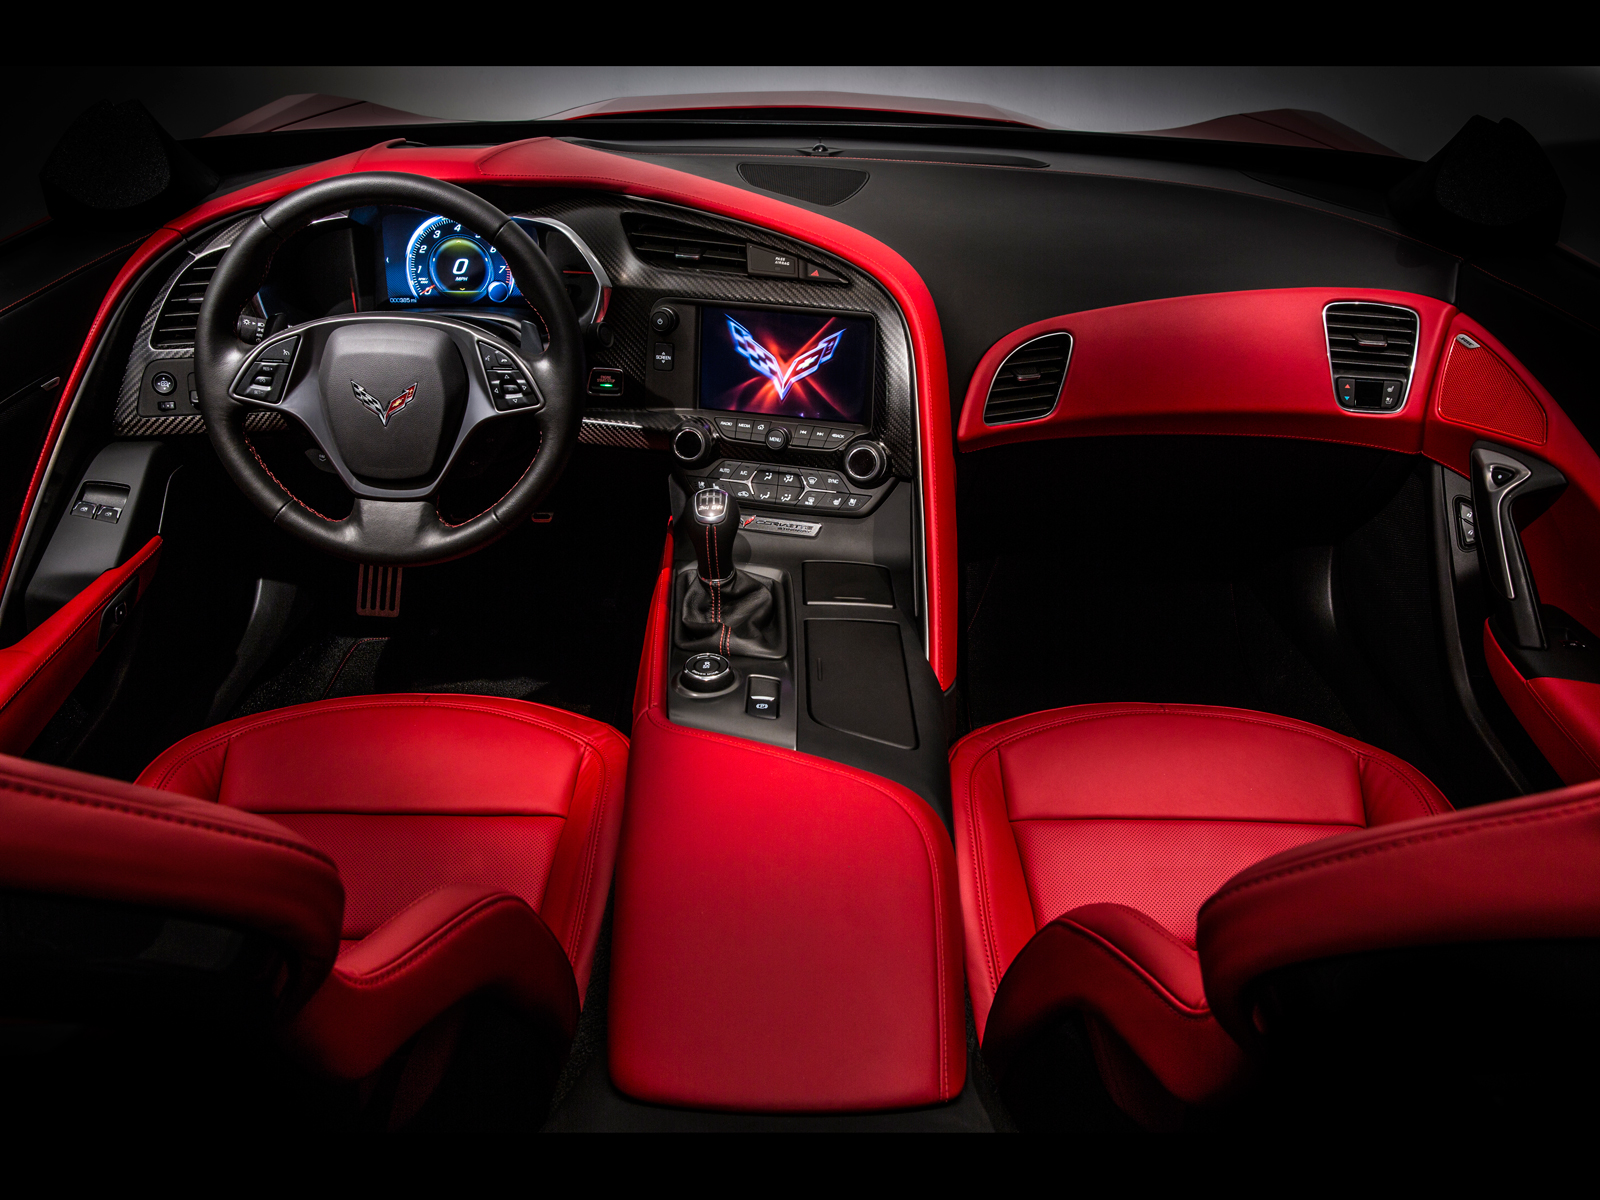 Fonds d'ecran Chevrolet 2014 Chevy Corvette Stingray ...